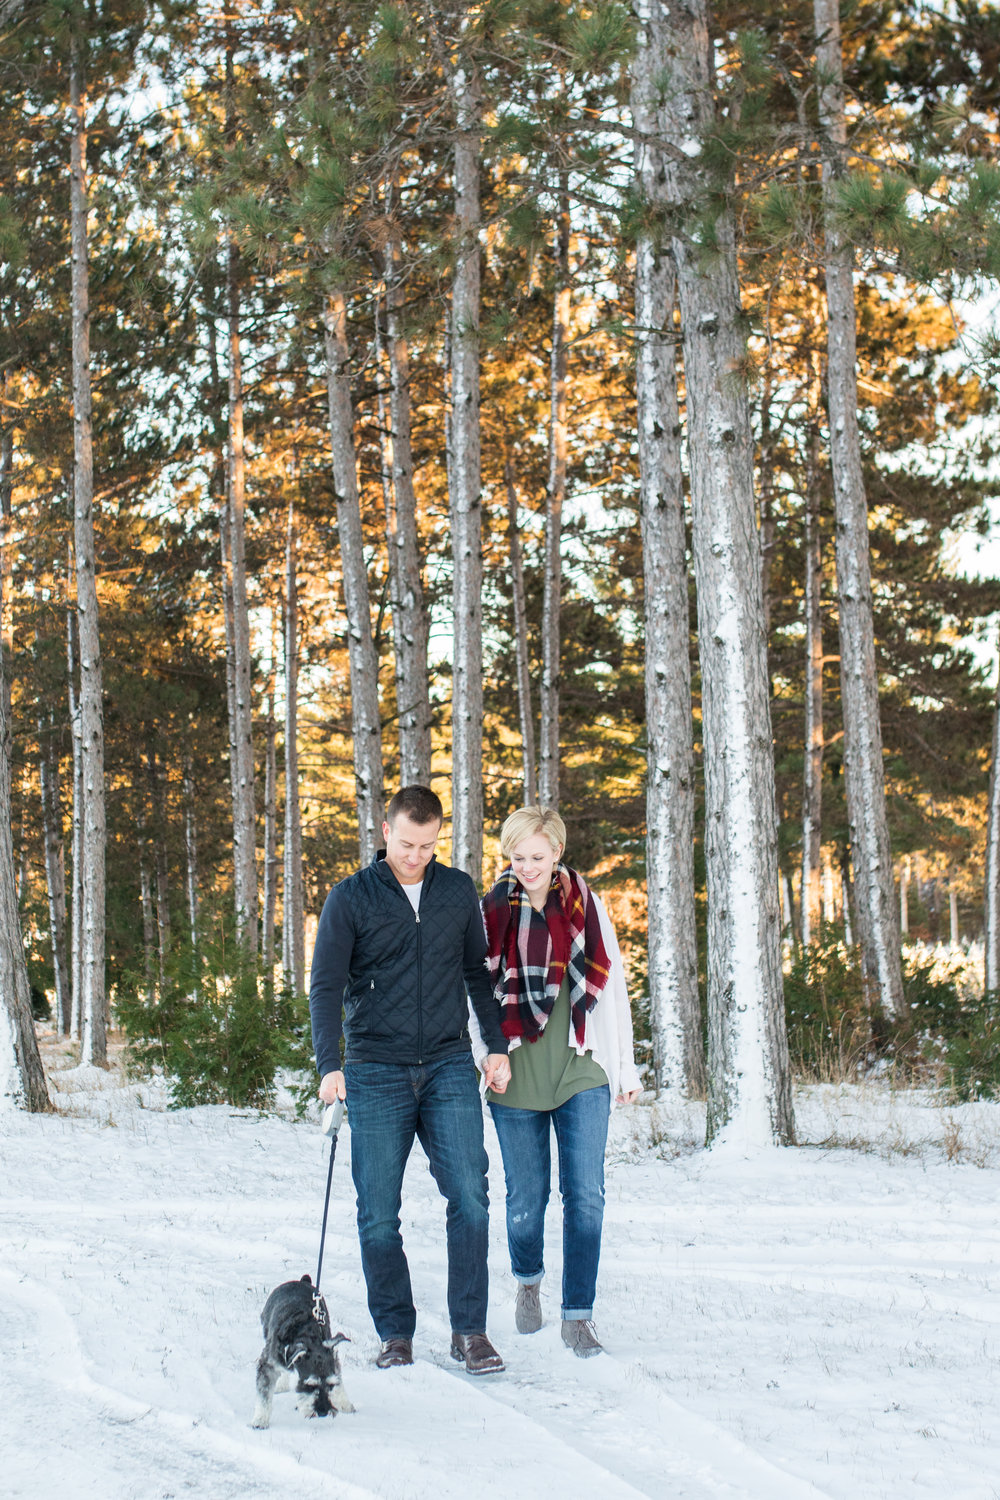 Nielsen Mini Session - Hansen Tree Farm -Sabrina Reis Photography - Minneapolis -23.jpg